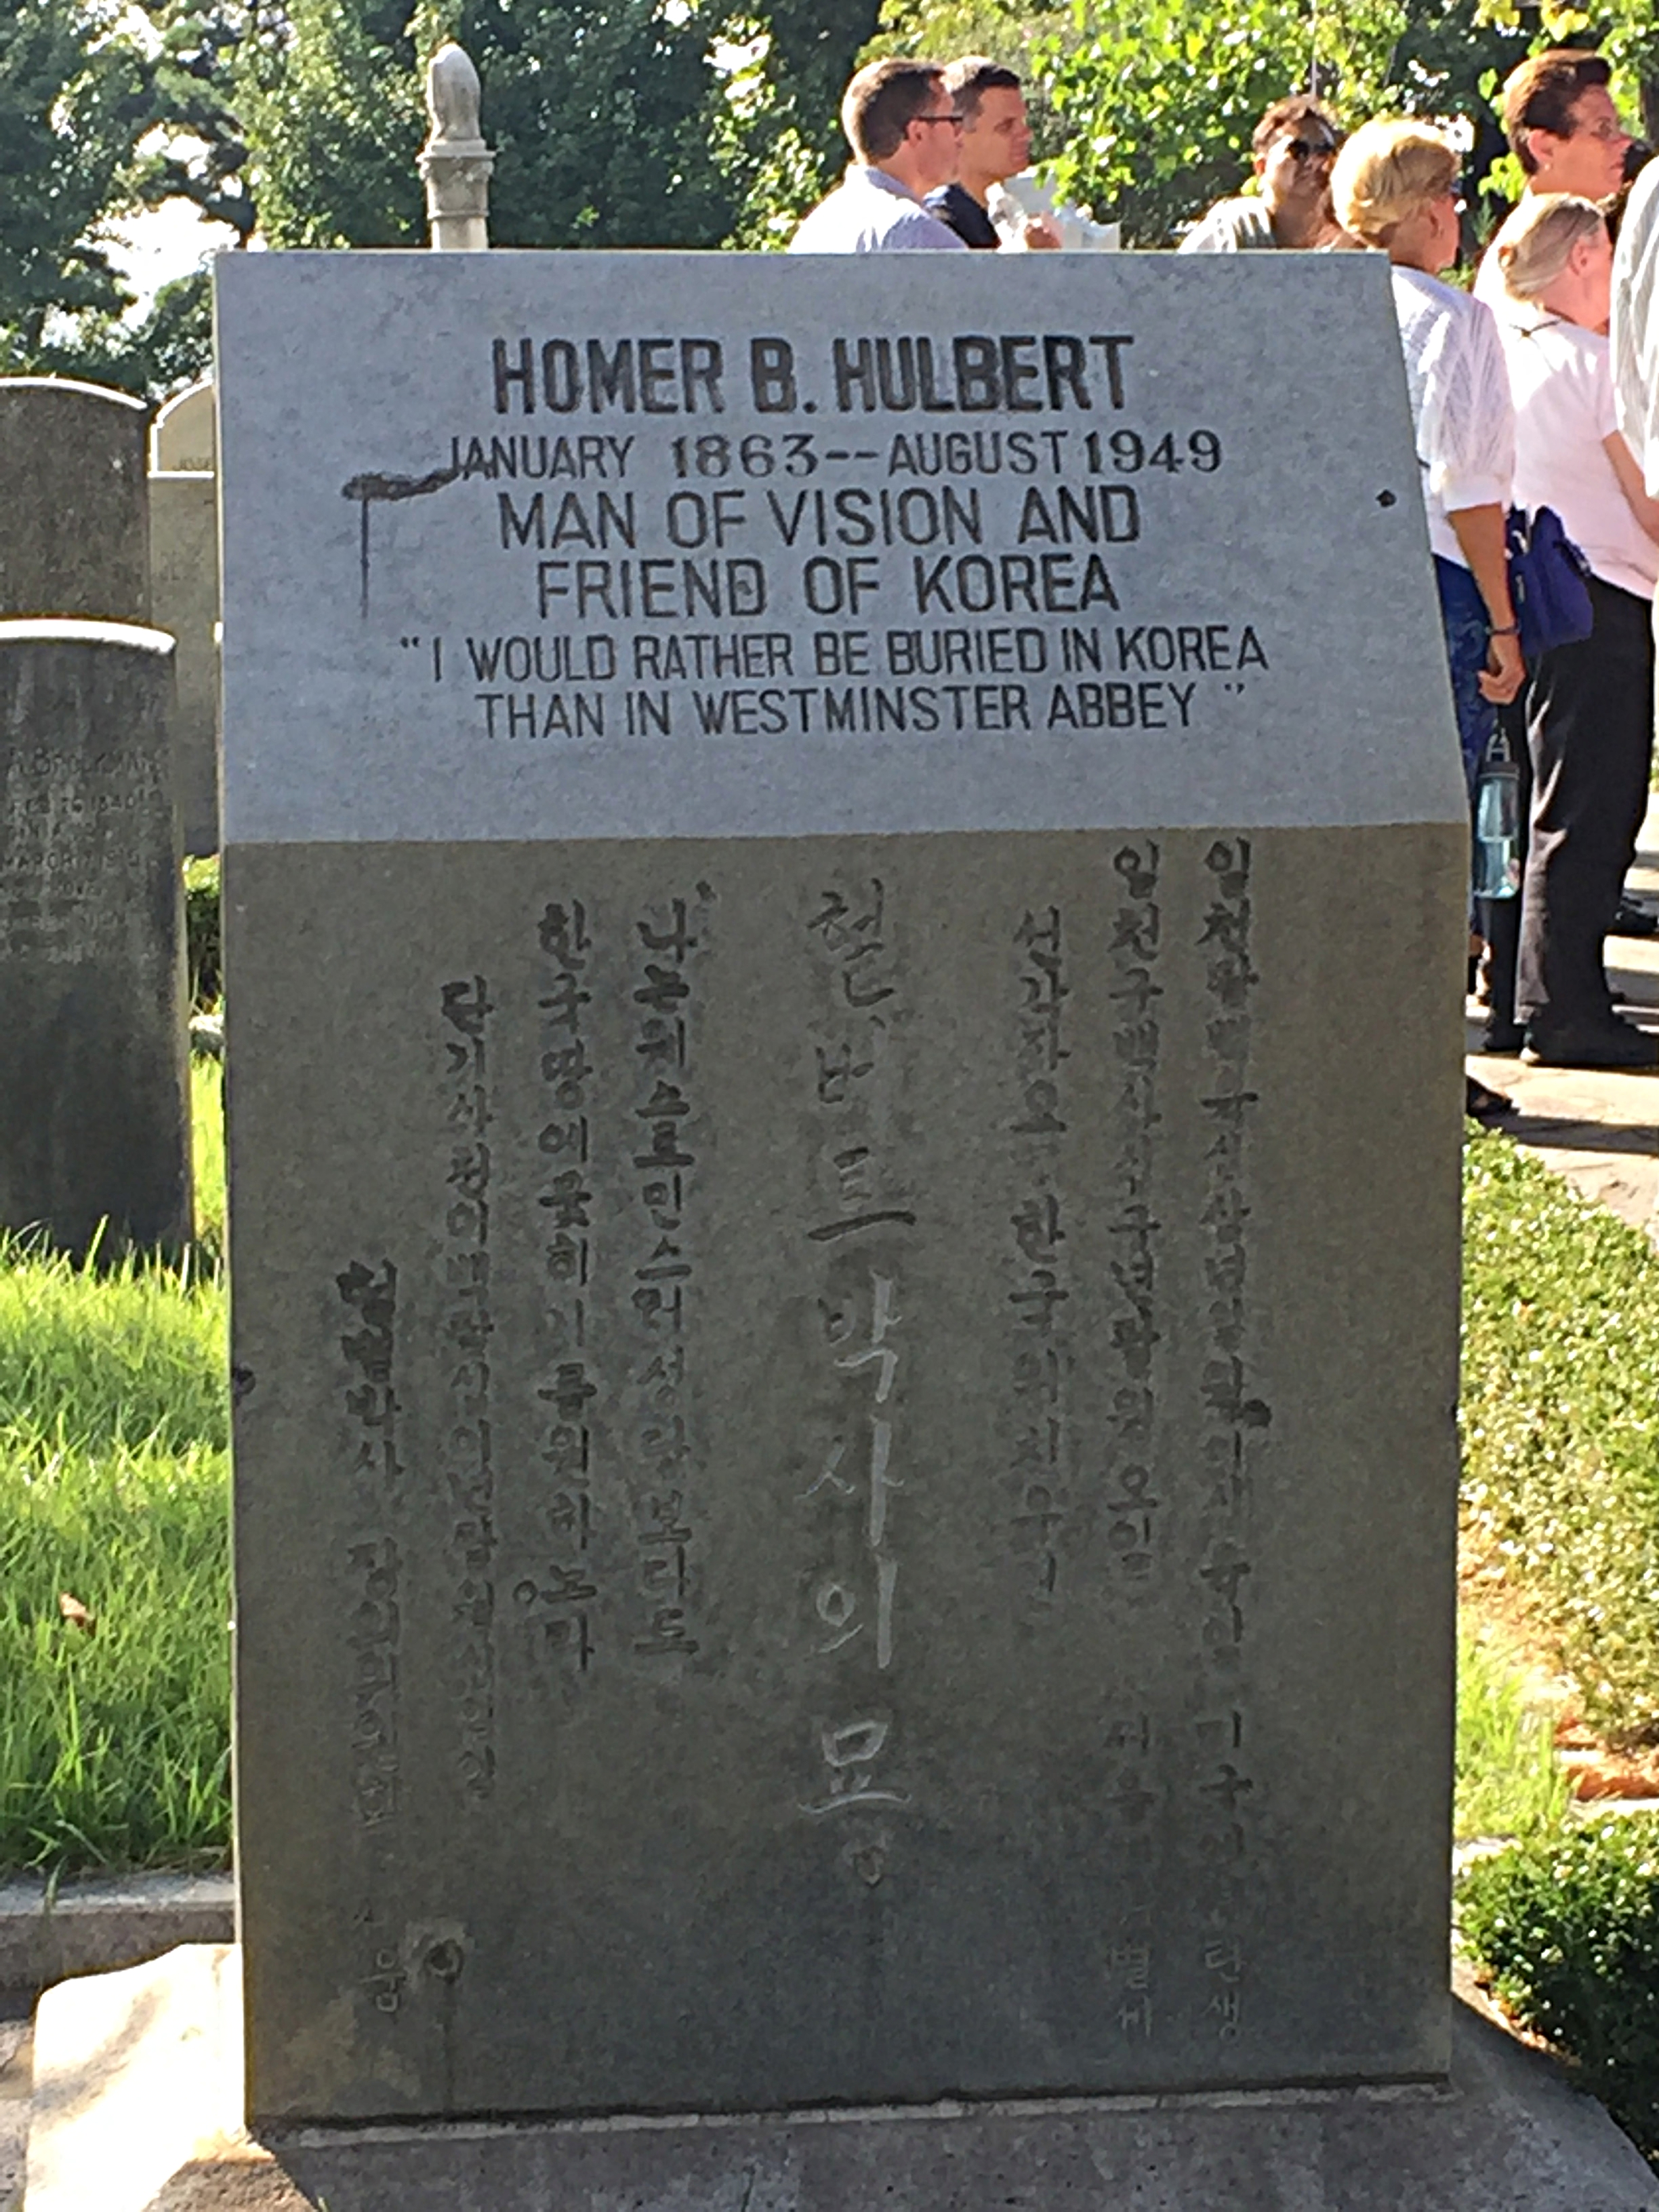 One of the many missionaries who spent their lives serving the Korean people.